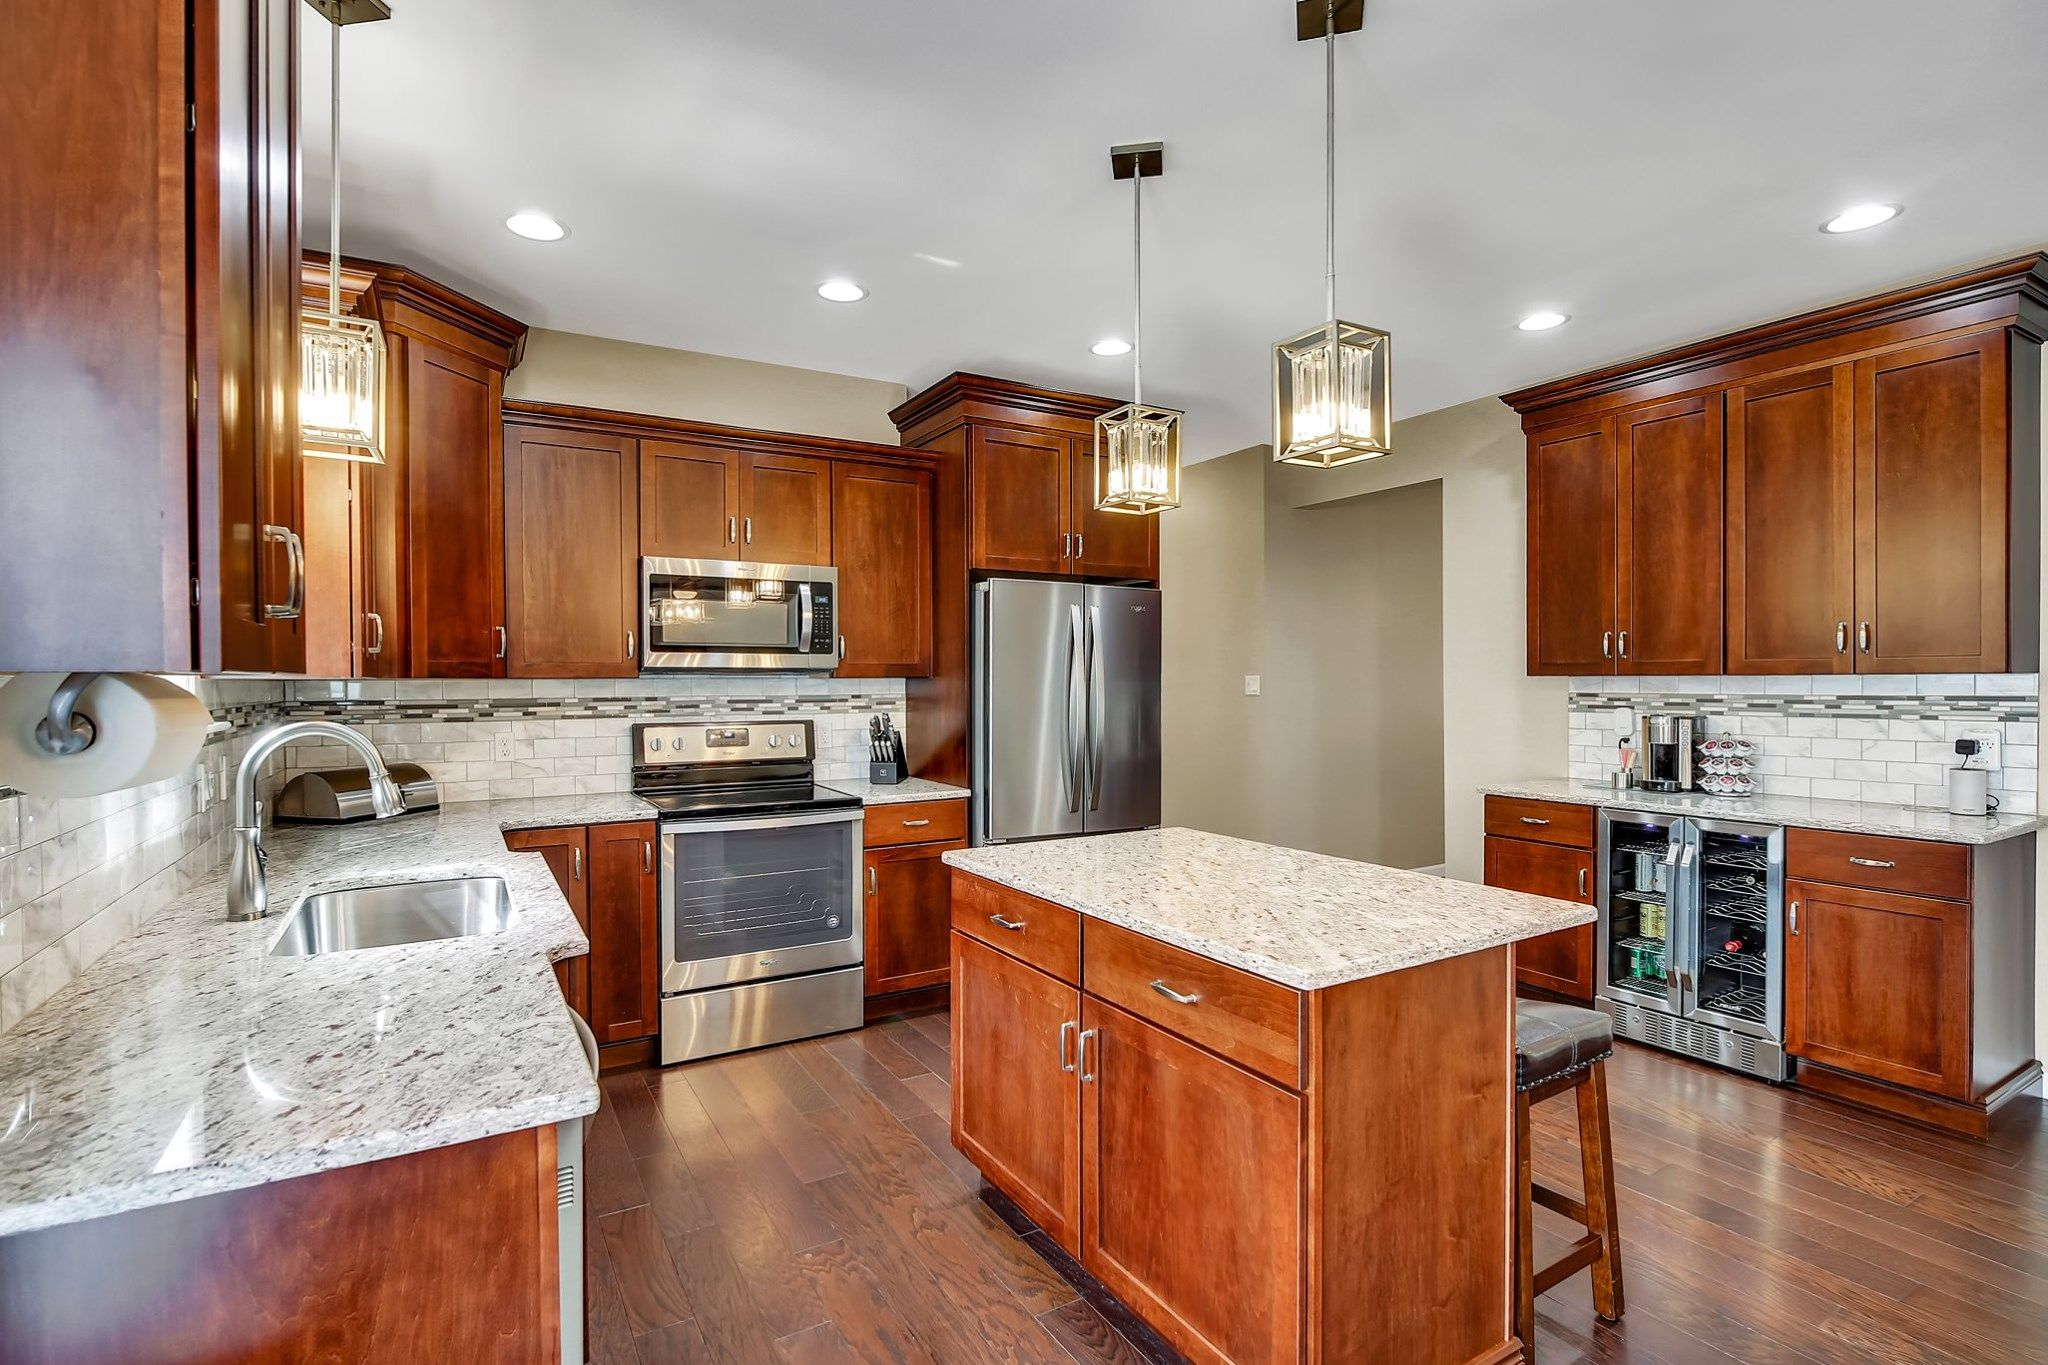 This Beautiful Kitchen Comes From Our Manchester Plan The Kitchen Includes Maple Cabinetry And A Kitchen Inspirations Beautiful Kitchens Custom Home Builders